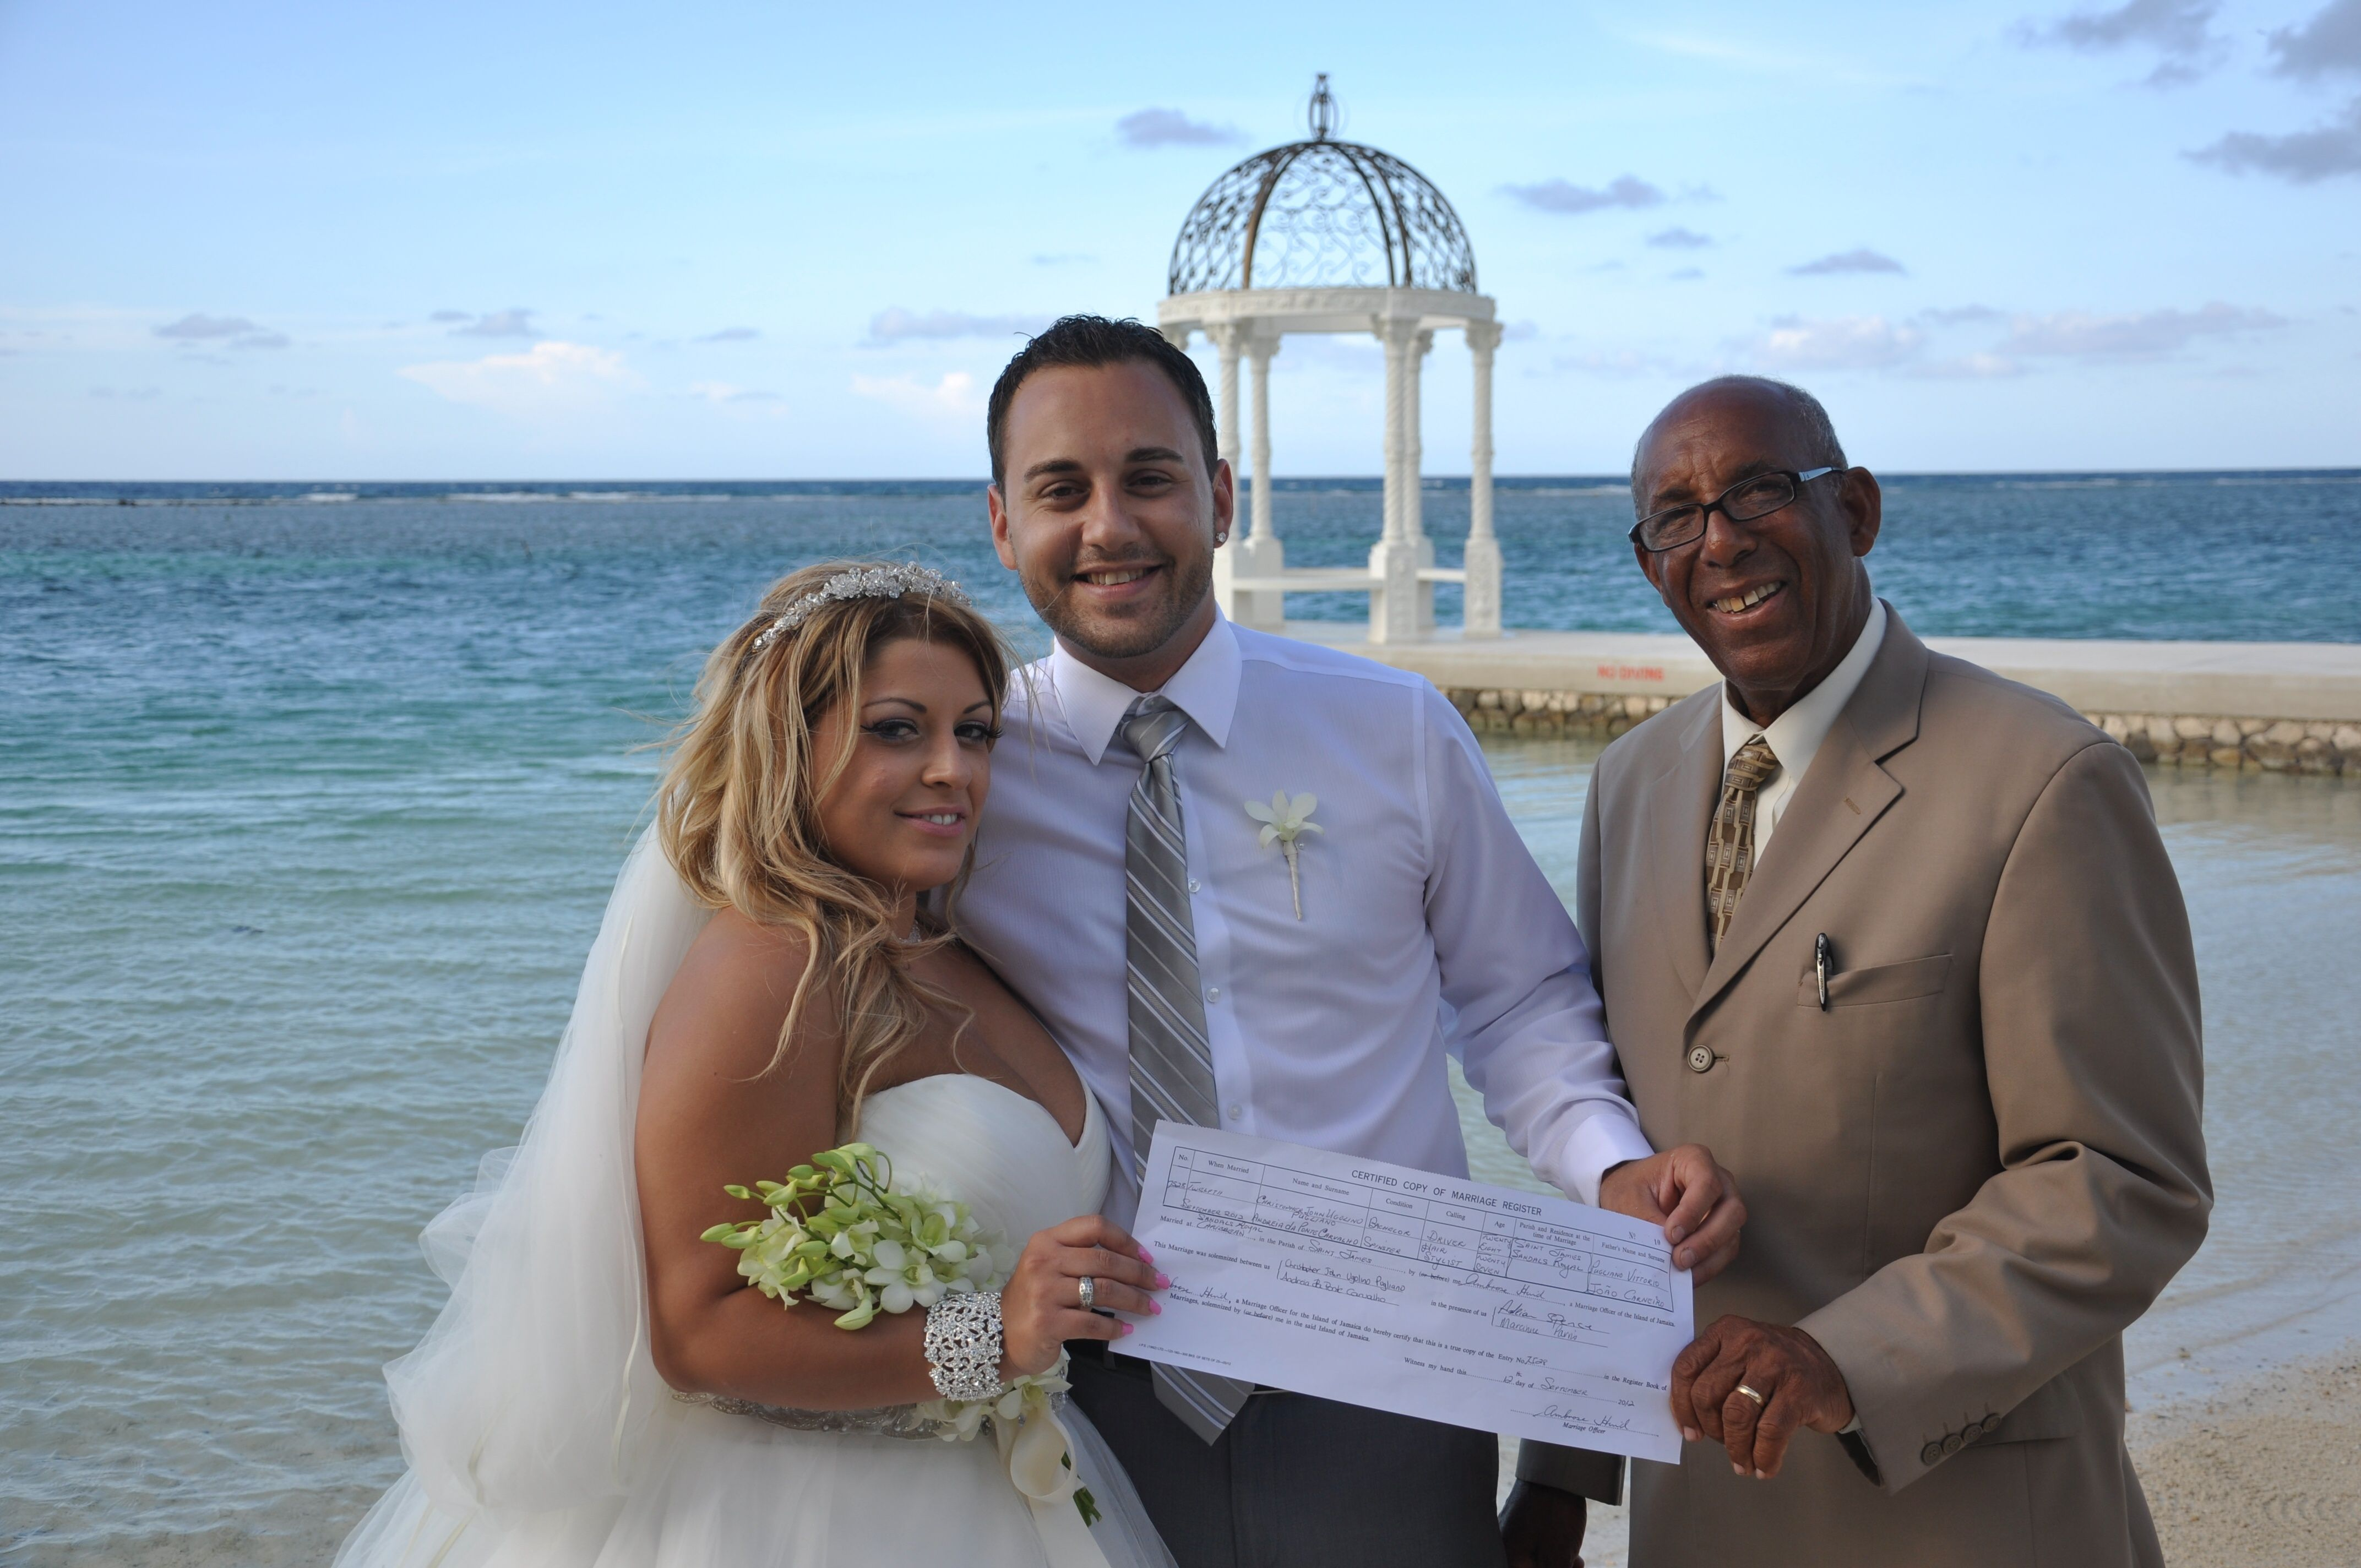 OUR DREAM WEDDING AT SANDALS ROYAL CARIBBEAN IN JAMAICA